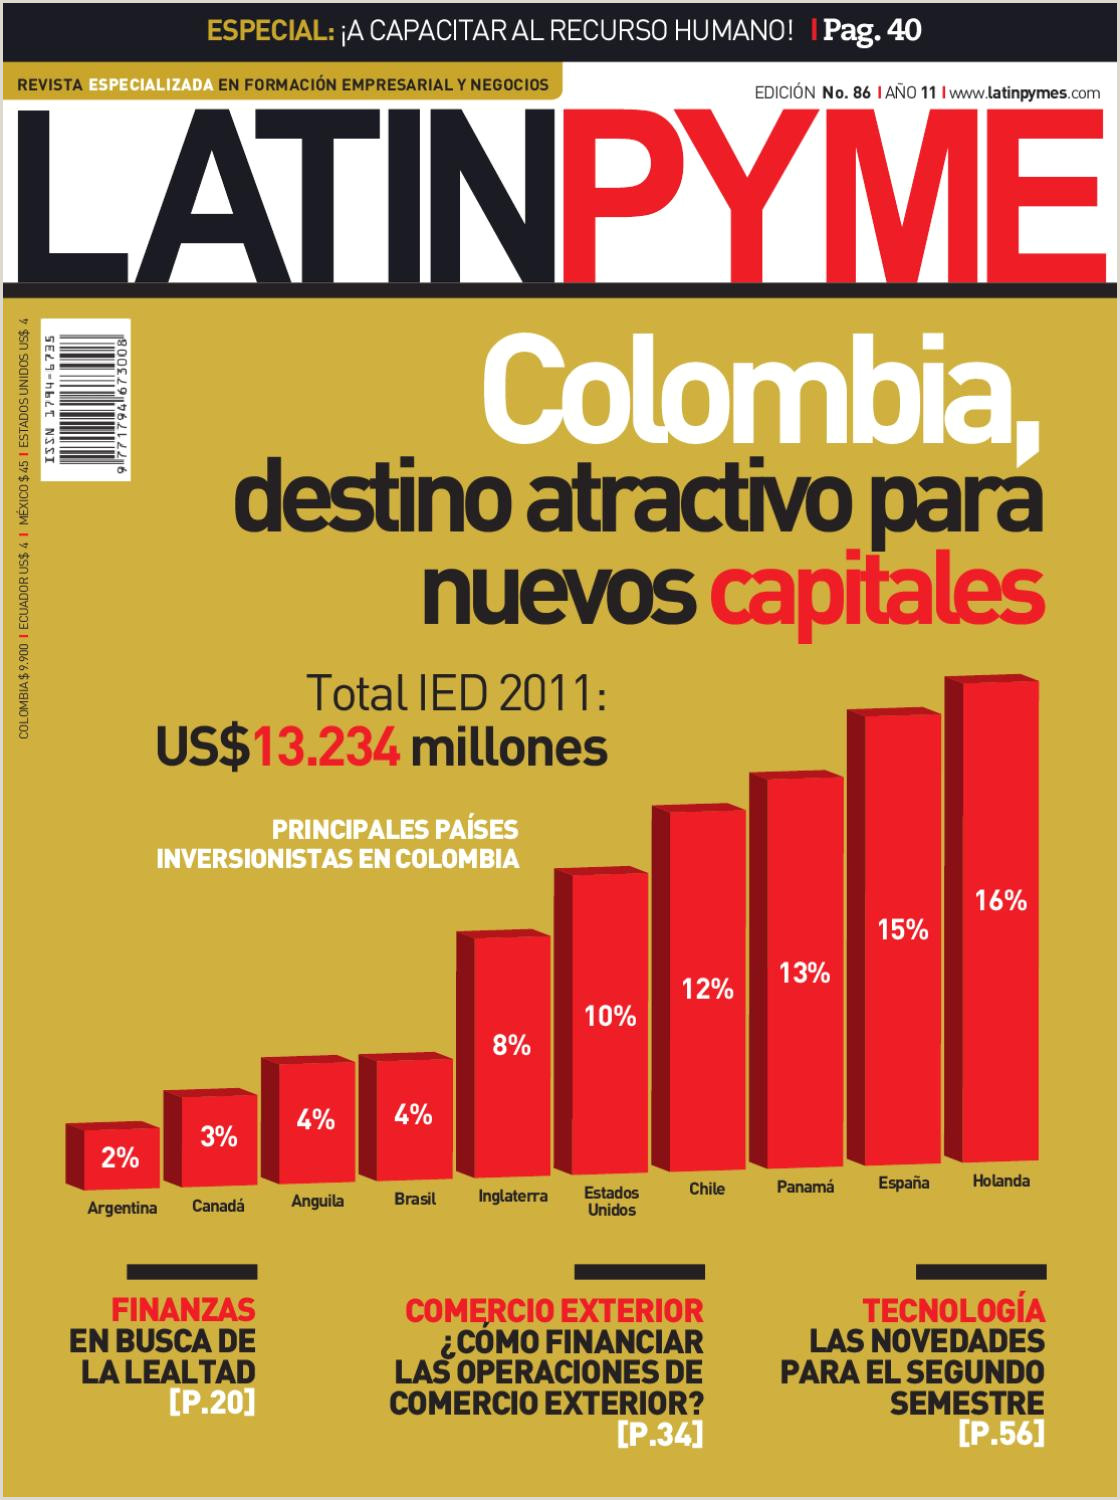 Revista Latinpyme Nº86 by LATINPYME issuu